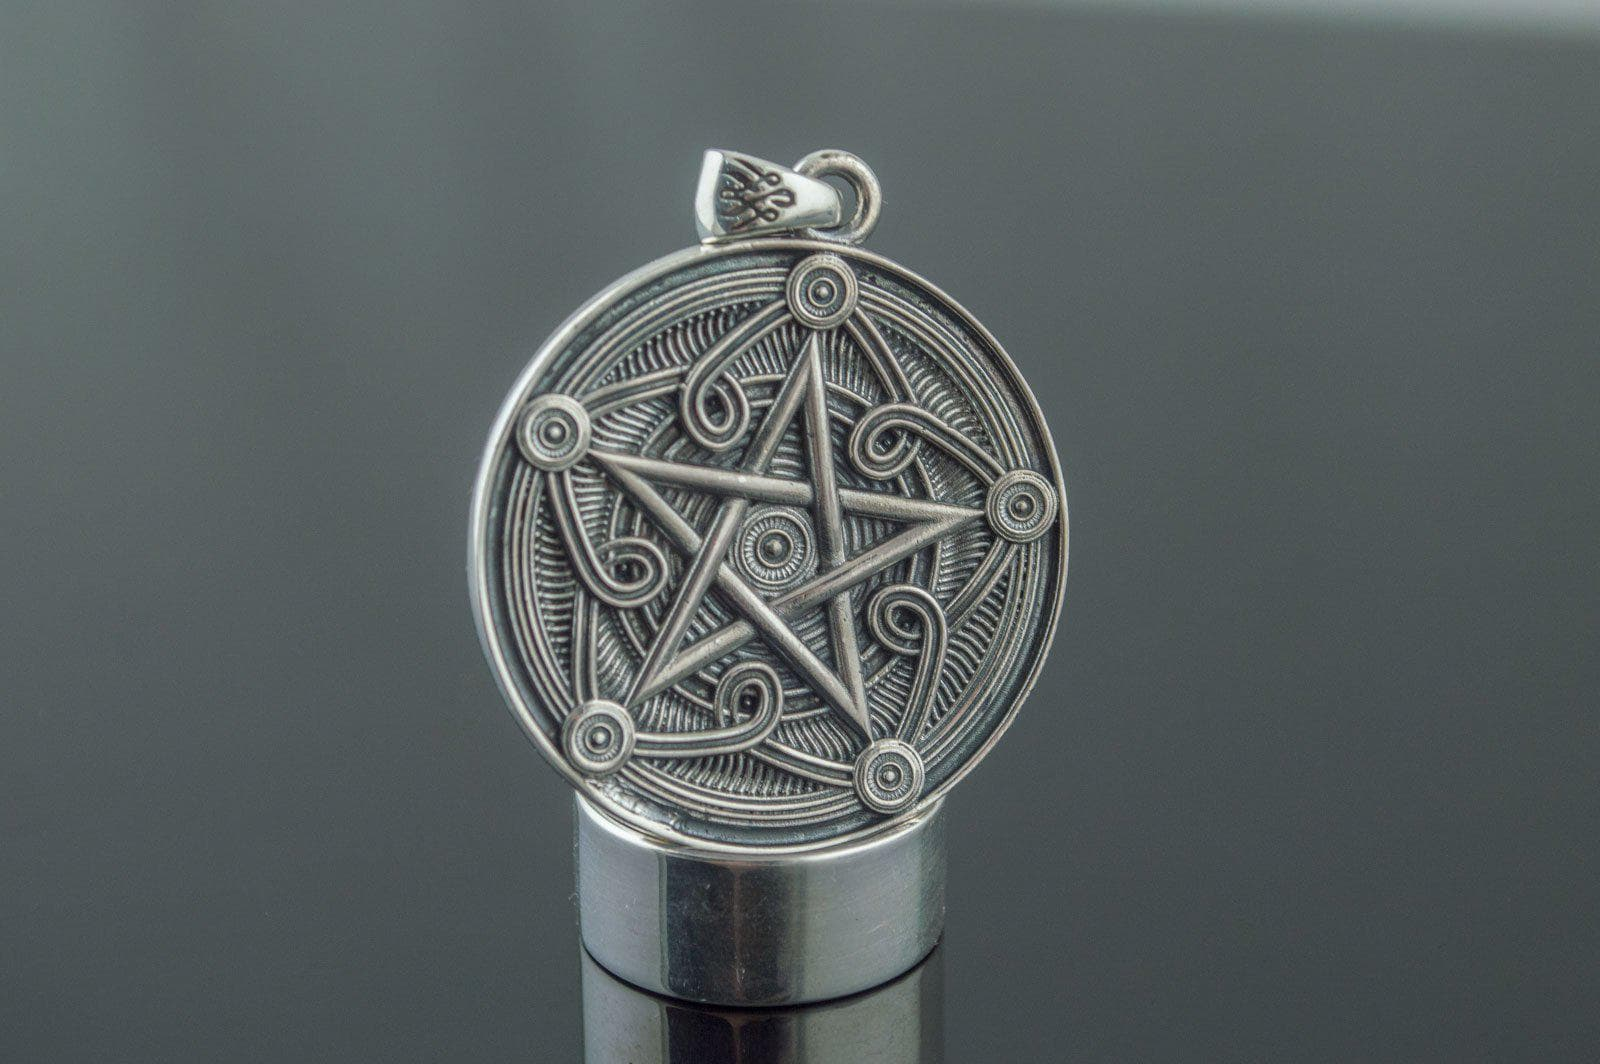 Pendants & Necklaces Wiccan Pentagram Symbol Sterling Silver handmade Pendant Ancient Treasures Ancientreasures Viking Odin Thor Mjolnir Celtic Ancient Egypt Norse Norse Mythology